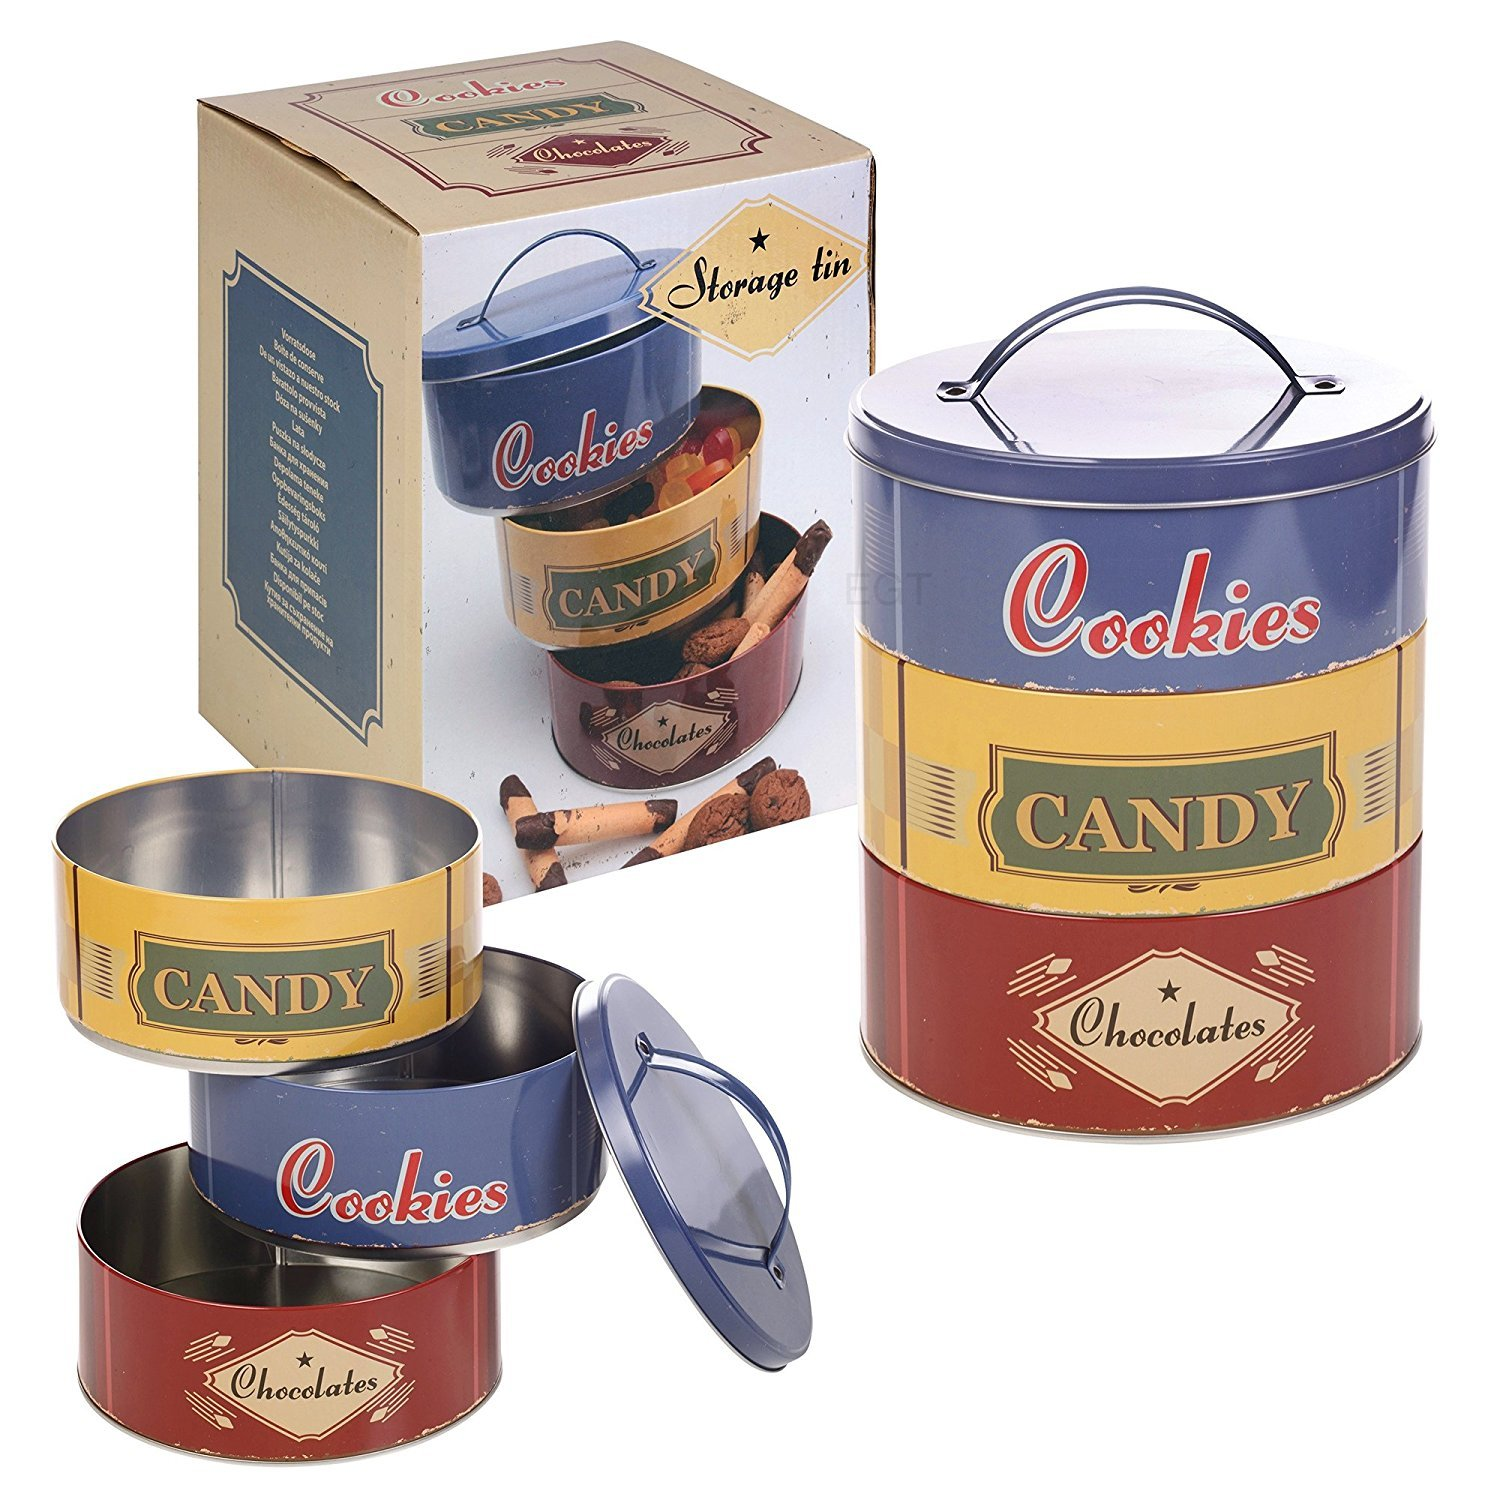 Cookies, Candy & Chocolates Tins - Set of 3 EG Homeware